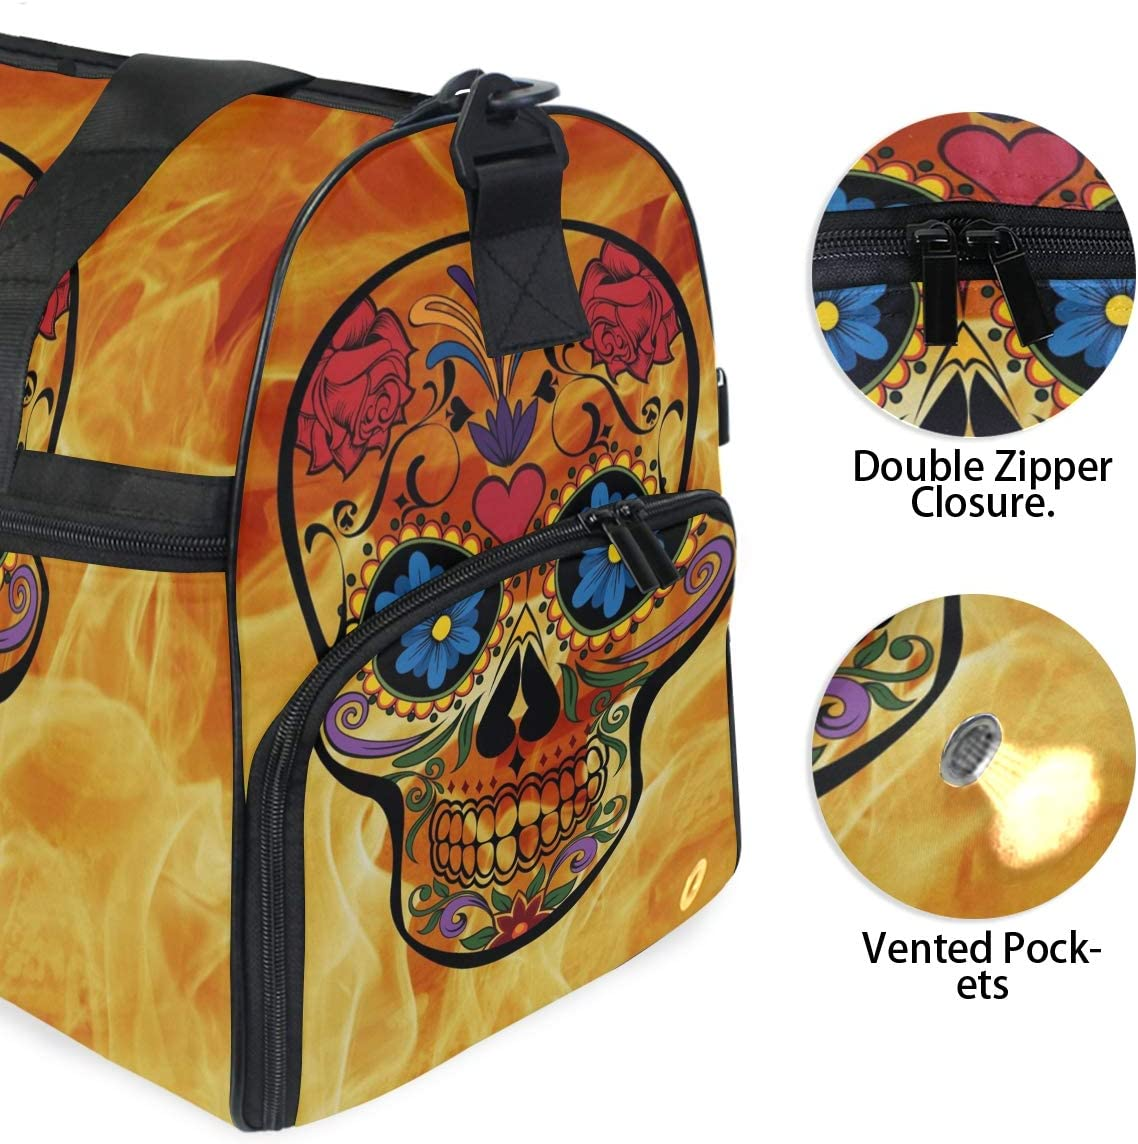 MUOOUM Fantastic Sugar Skull And Fire Large Duffle Bags Sports Gym Bag with Shoes Compartment for Men and Women